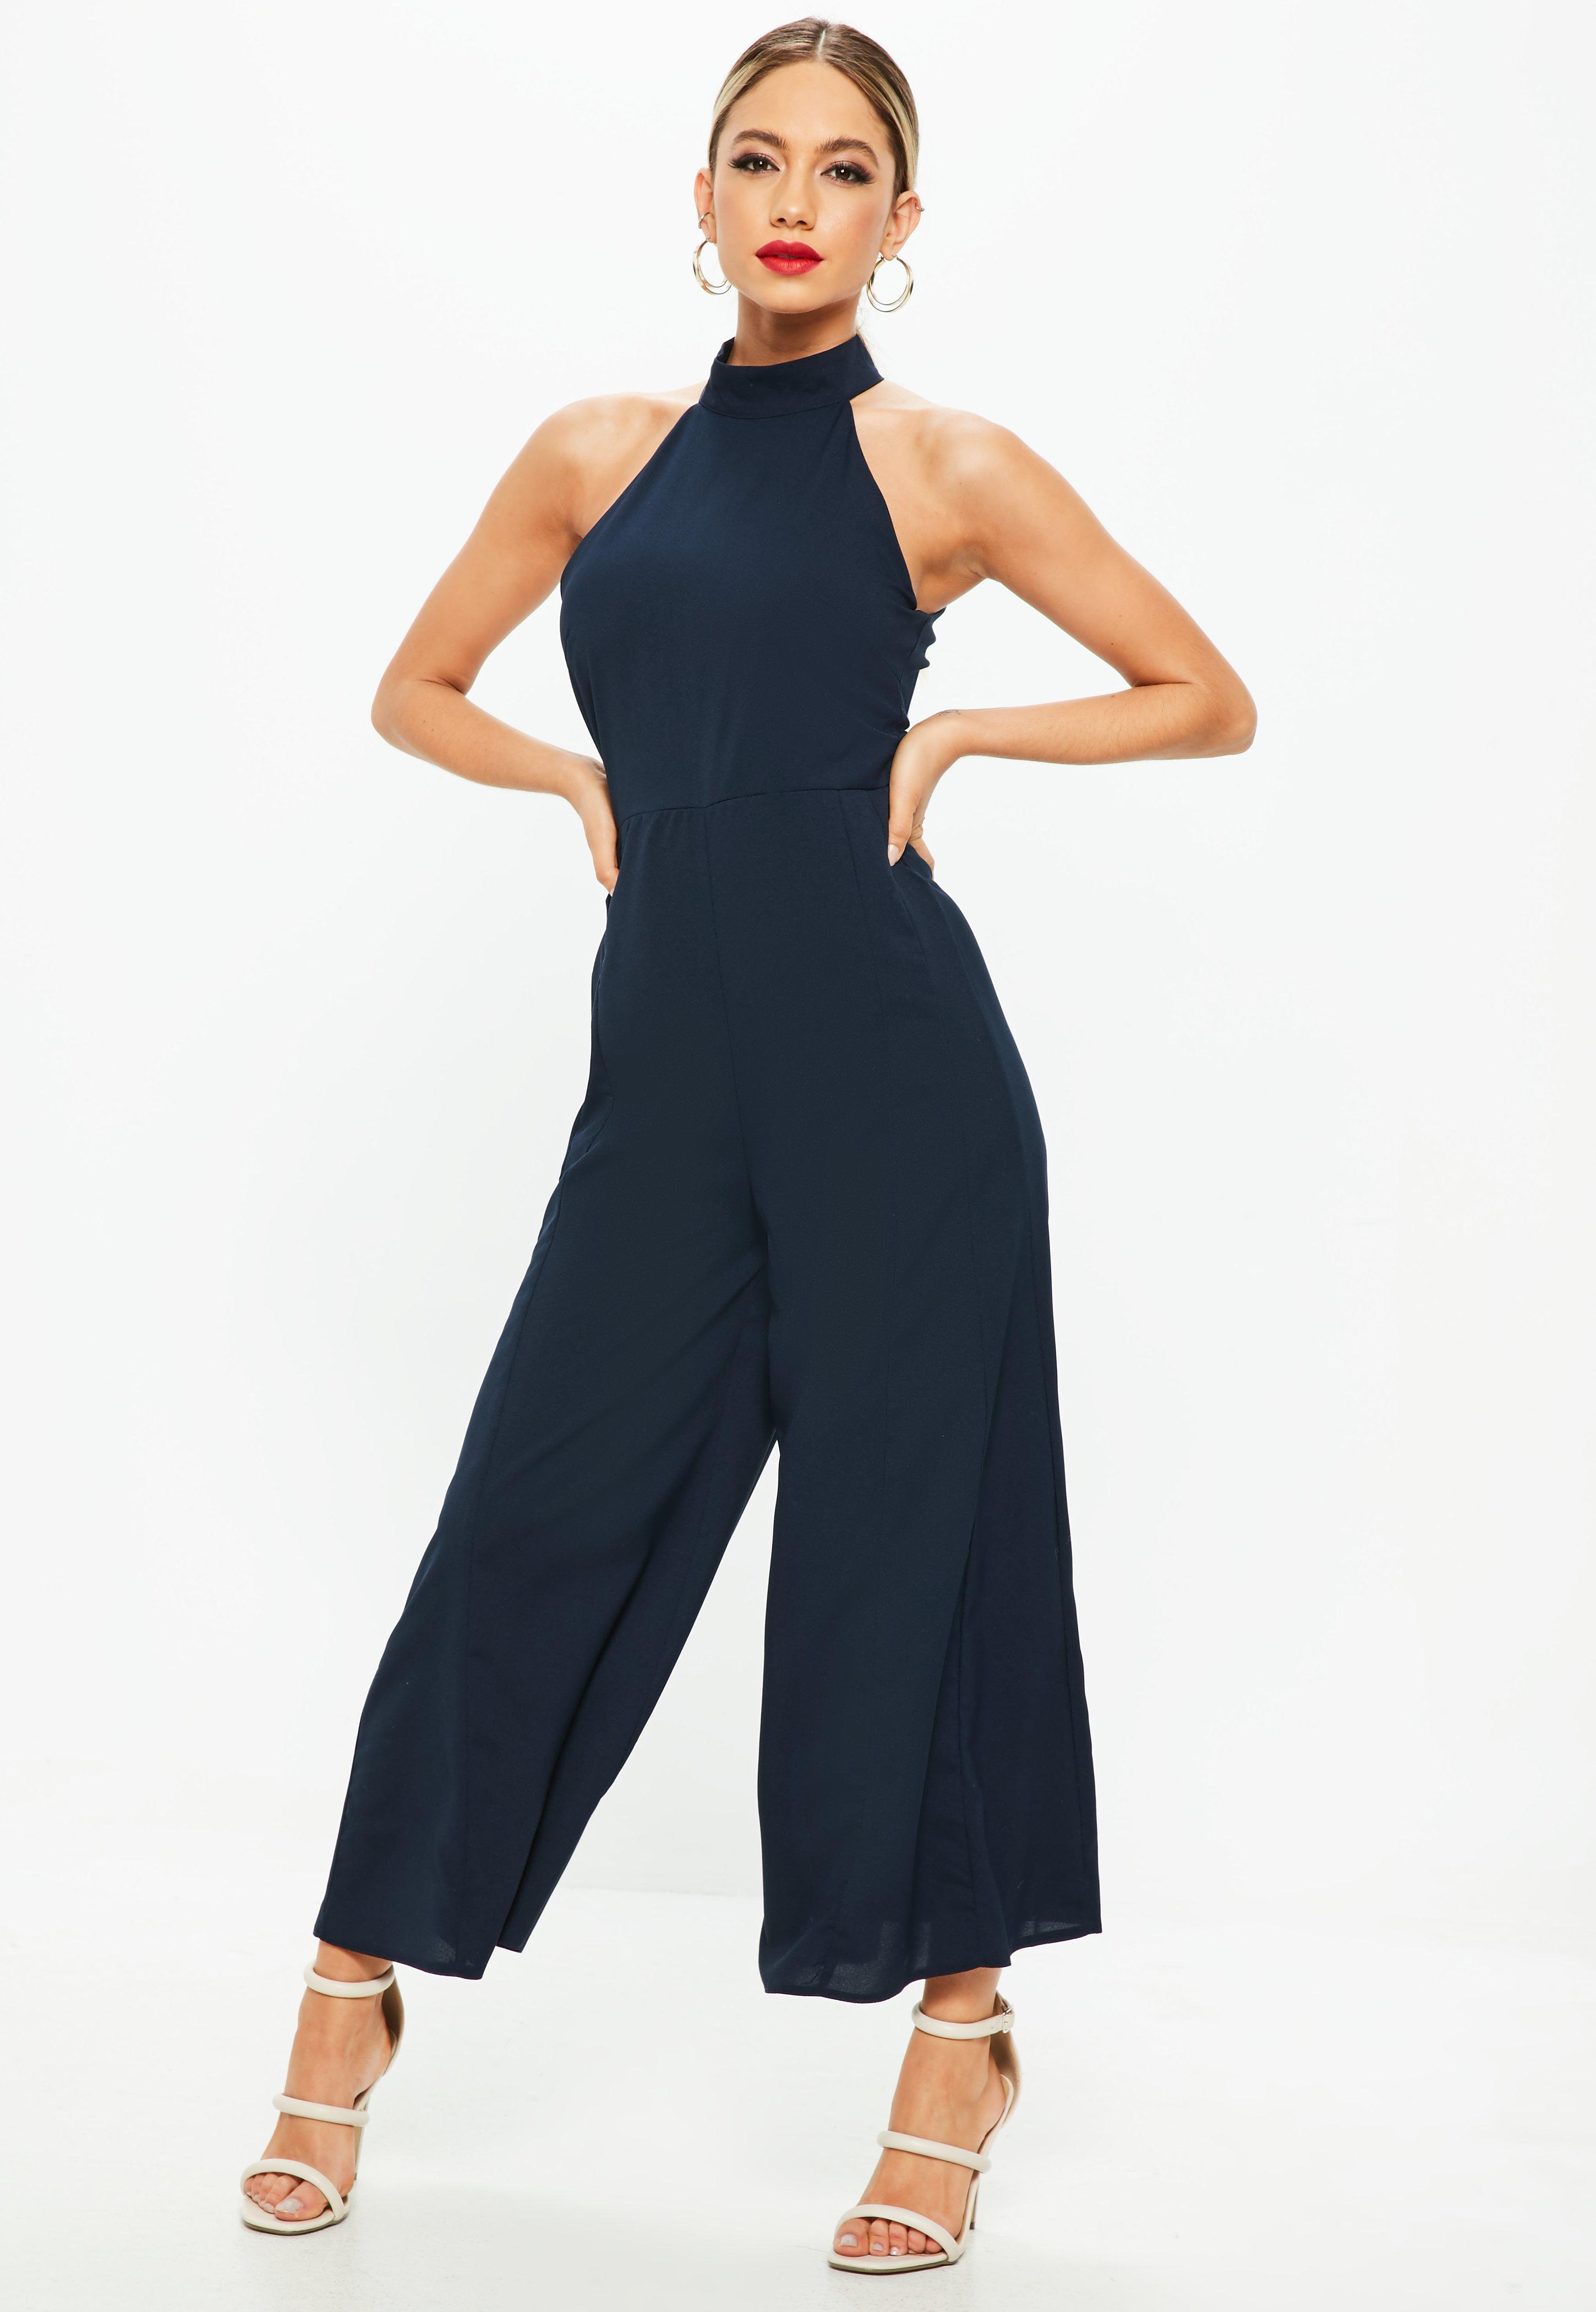 a49f5247fa6d Lyst - Missguided Navy High Neck Jumpsuit in Blue